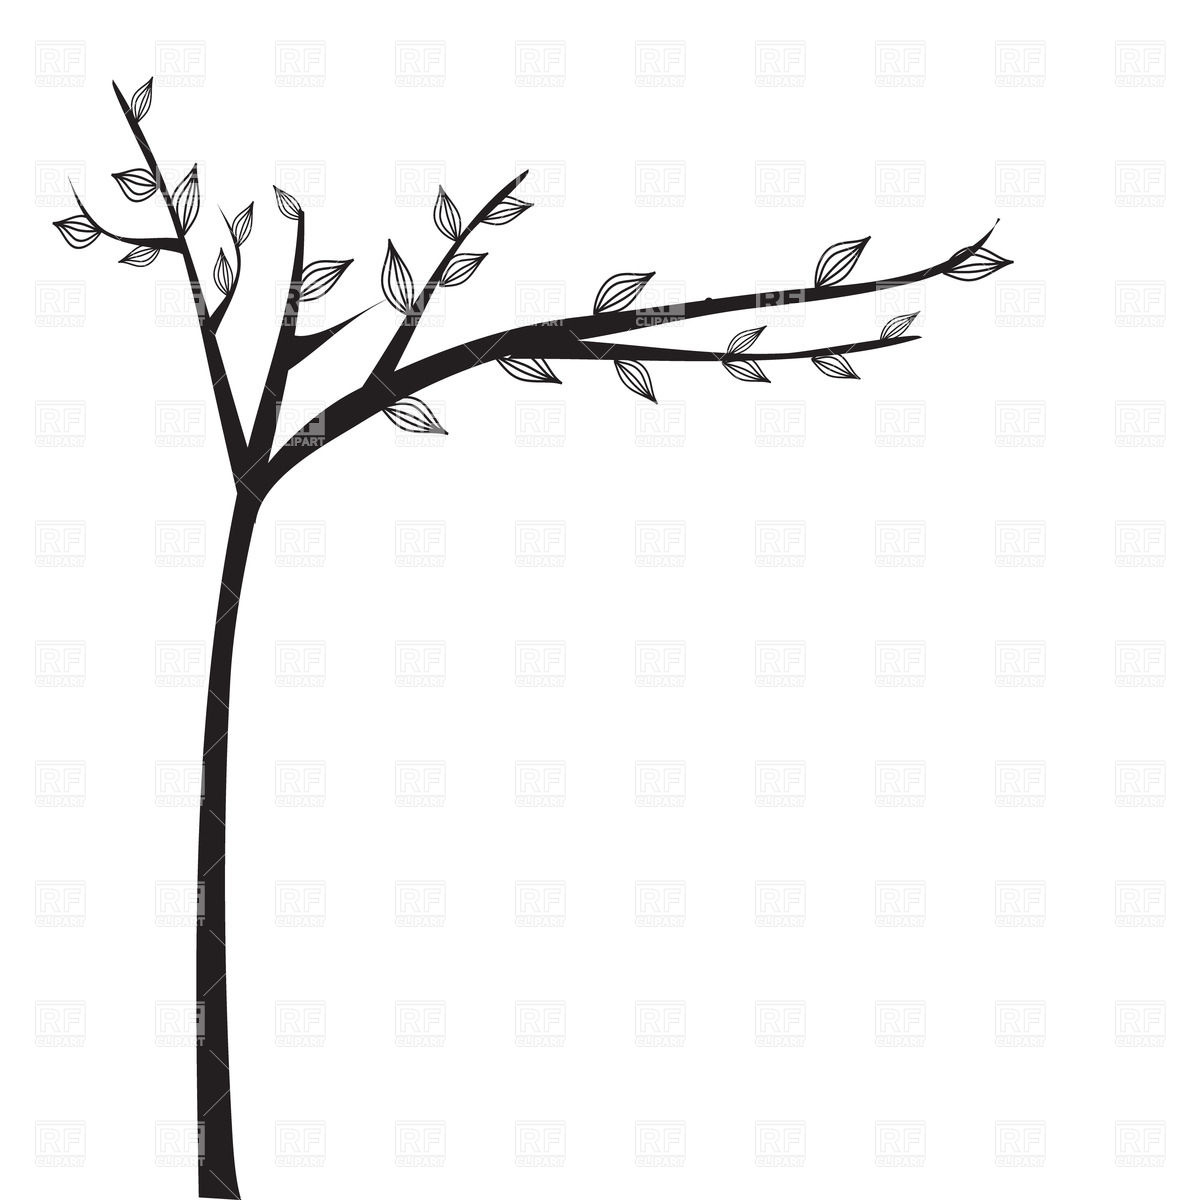 Abstract black tree silhouette Vector Image #23121.